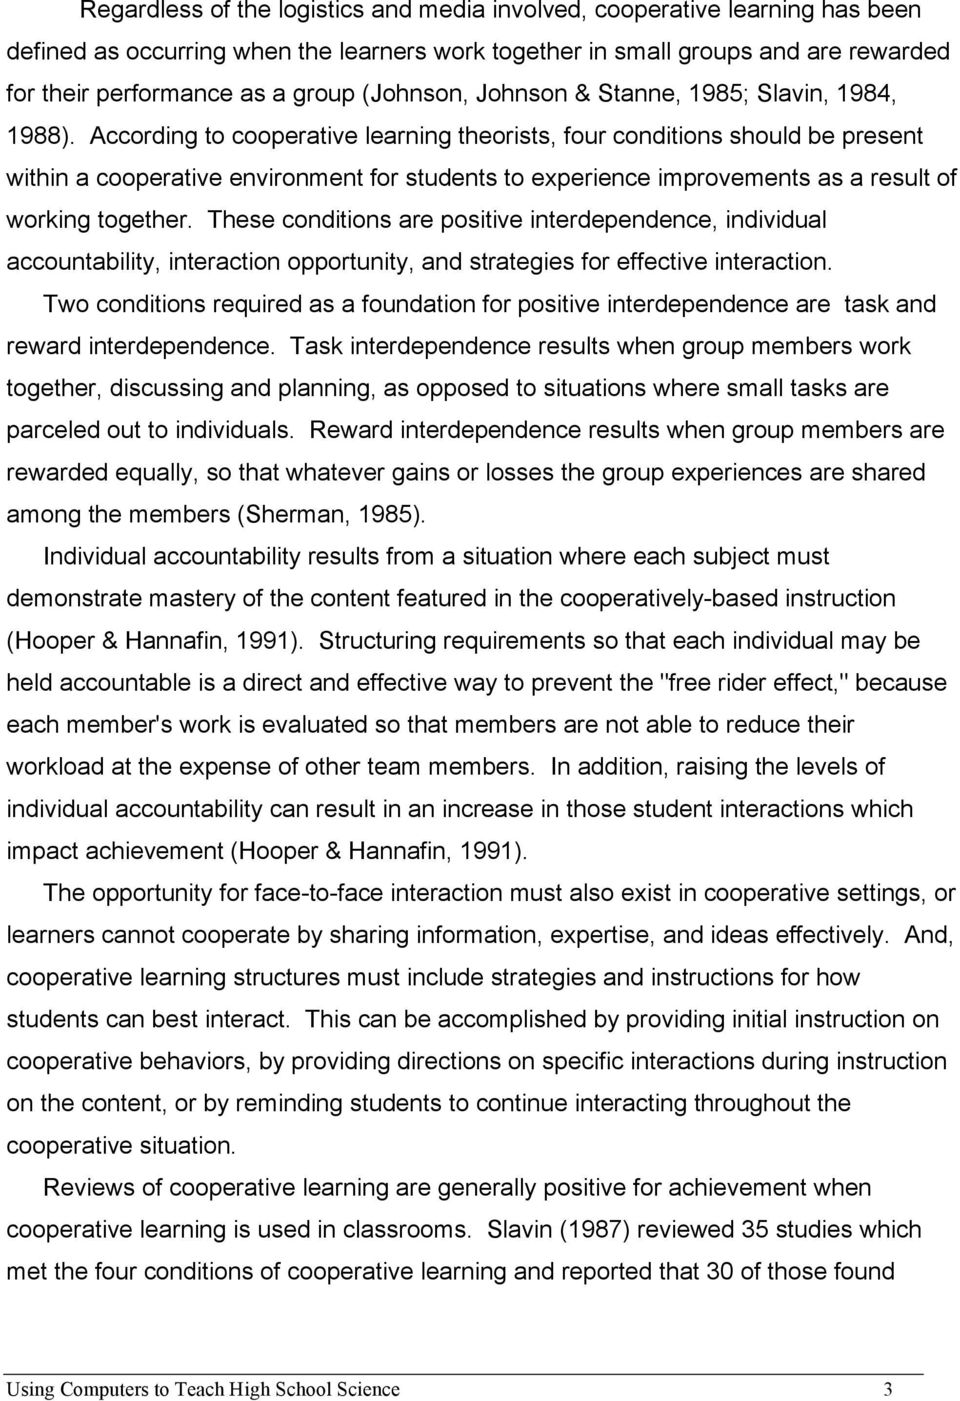 According to cooperative learning theorists, four conditions should be present within a cooperative environment for students to experience improvements as a result of working together.